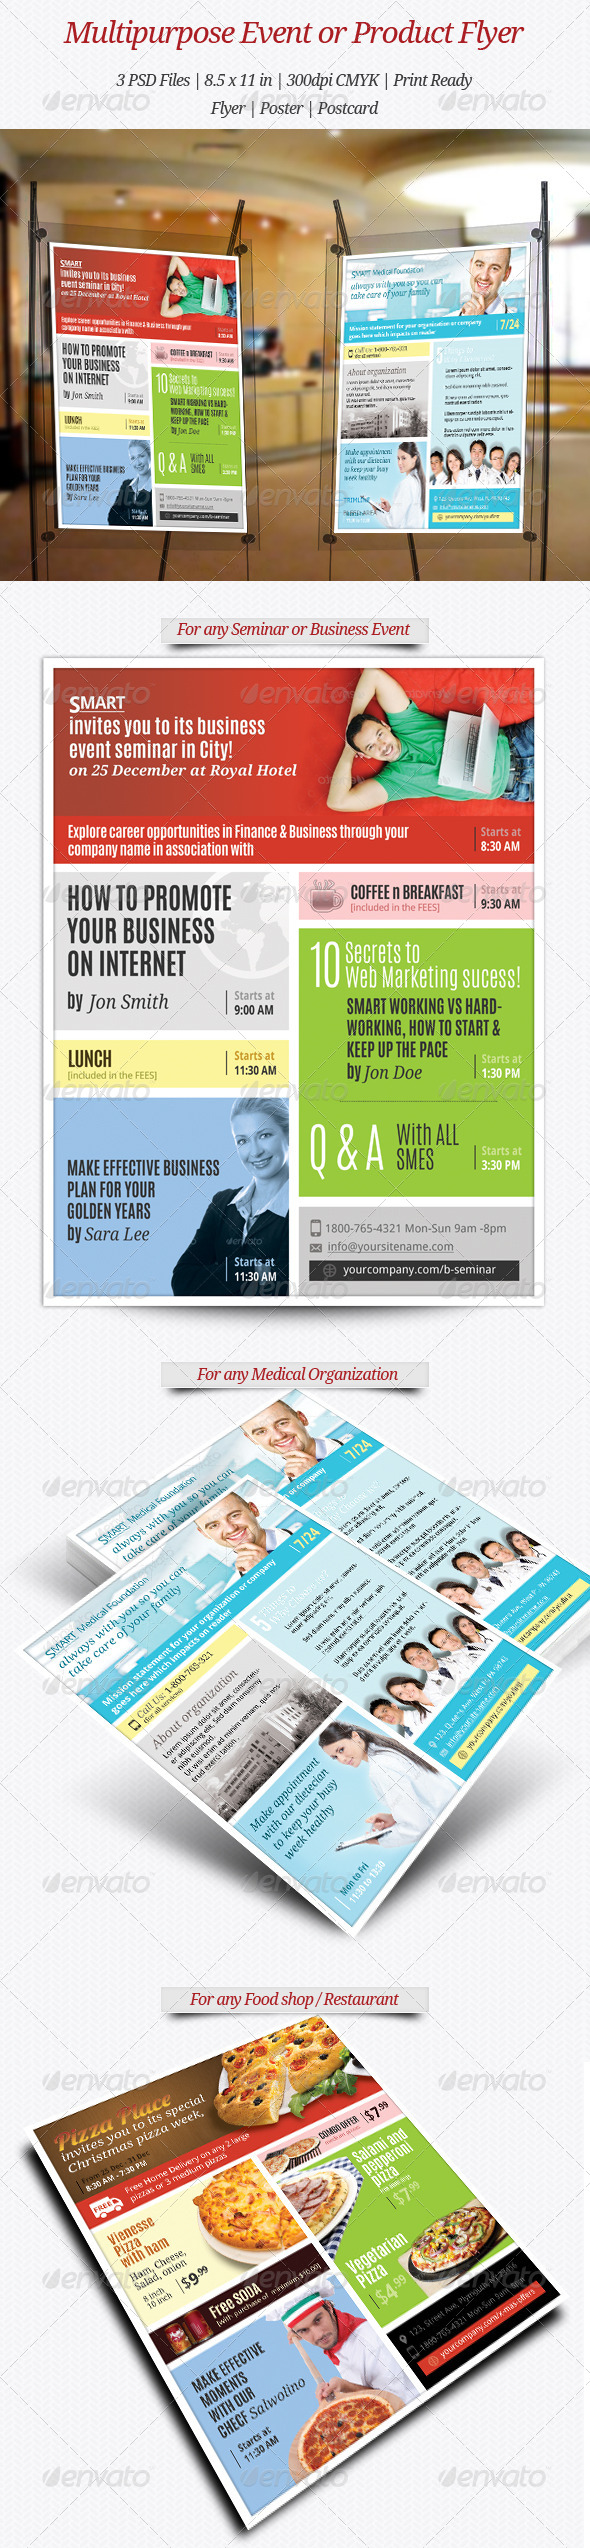 GraphicRiver Multipurpose Product Service or Event Flyer 6093570